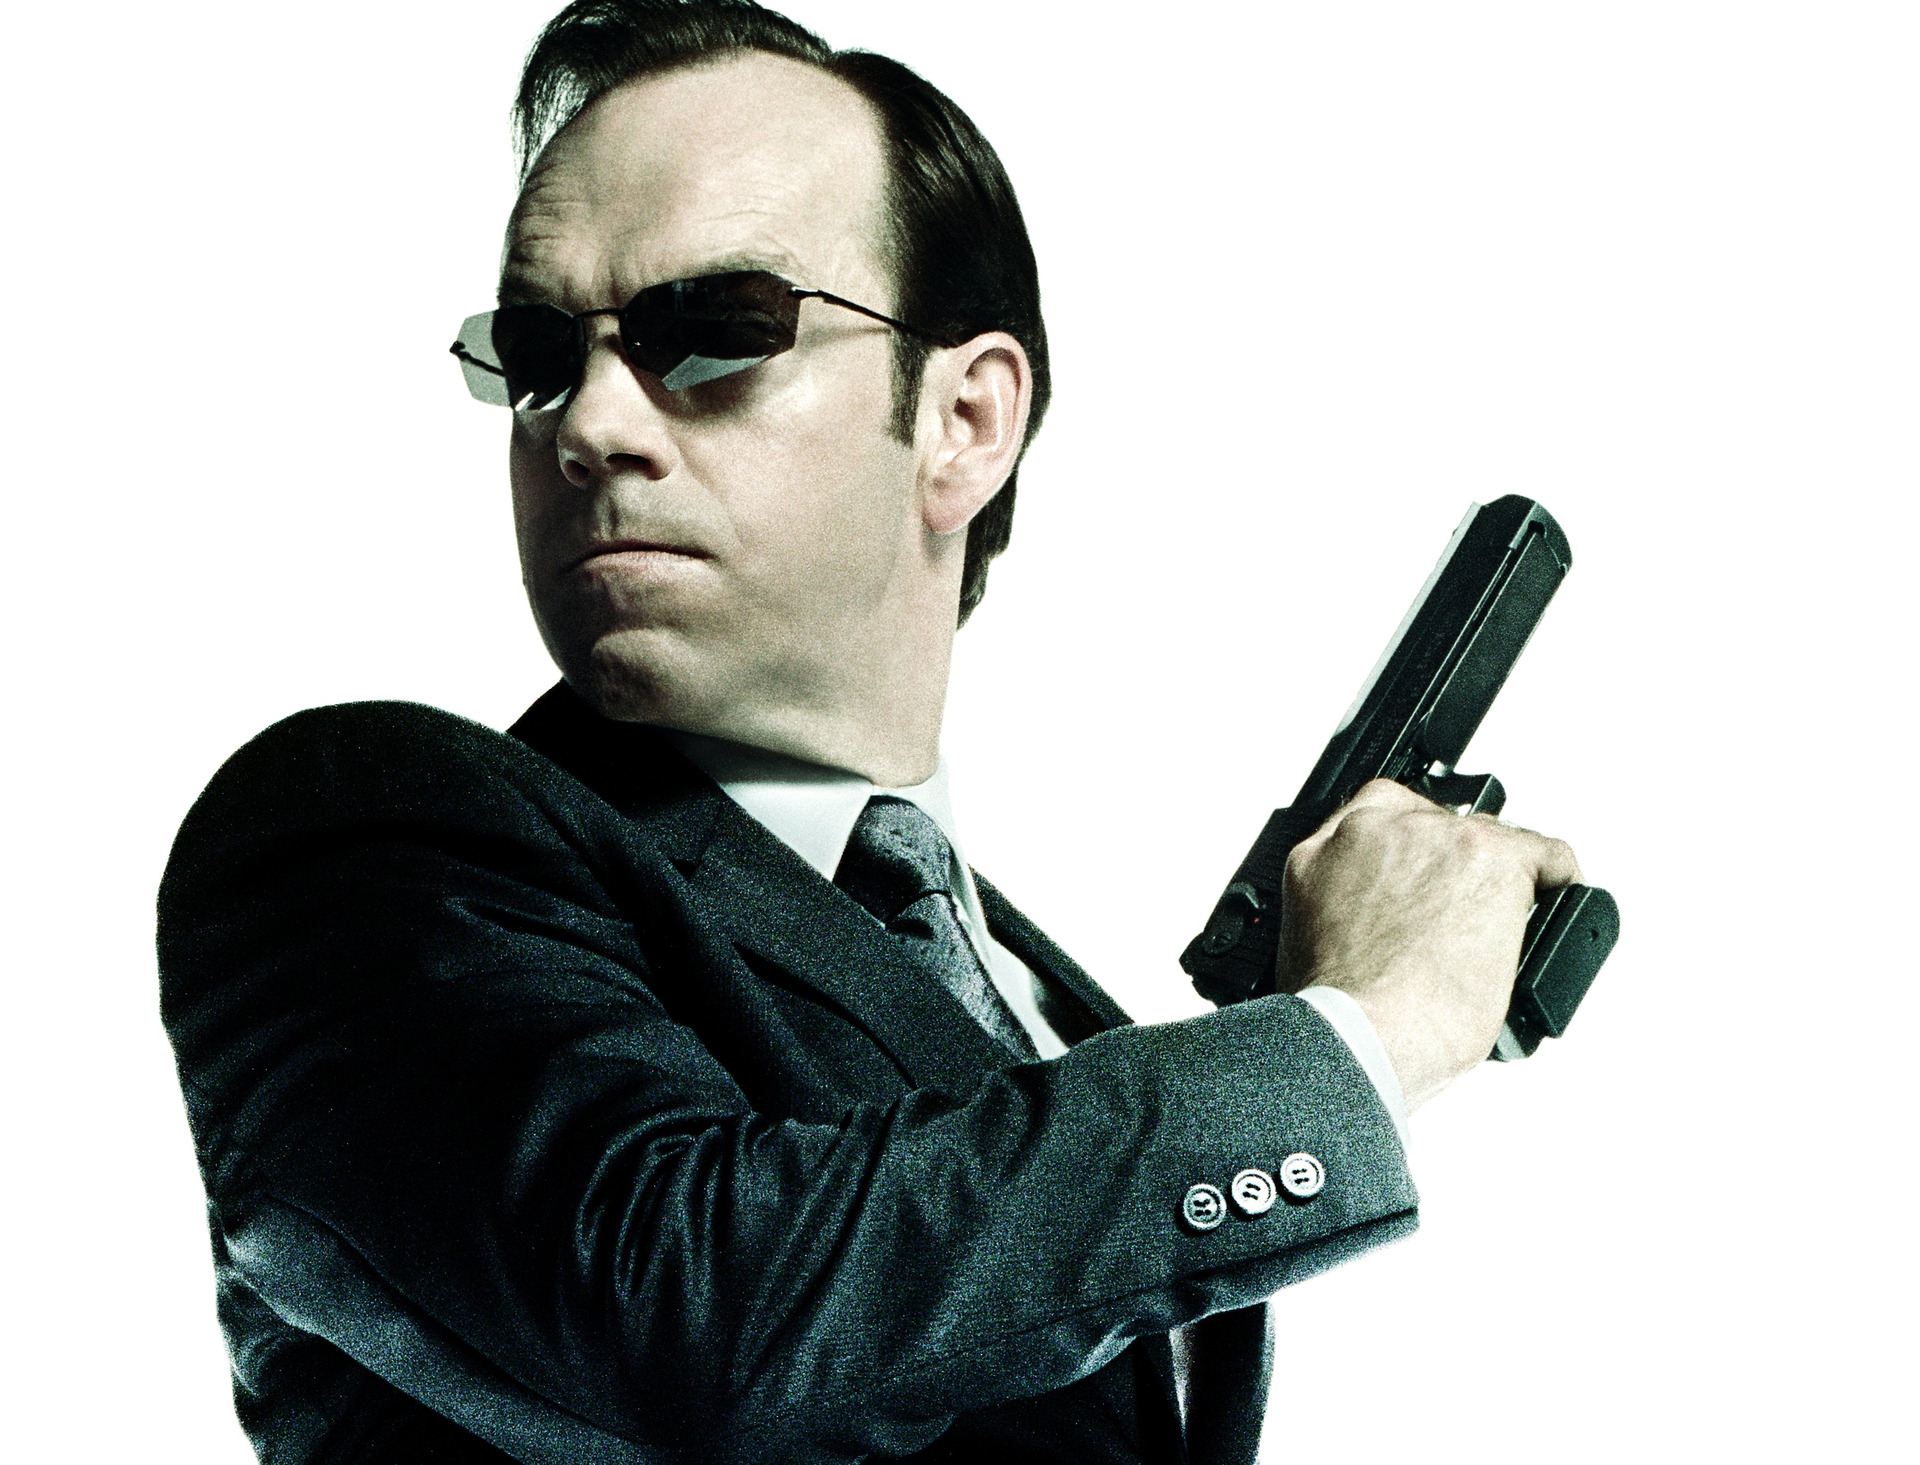 'Agent Smith' infects 25 million Android devices globally through WhatsApp, Opera and SwiftKey clones